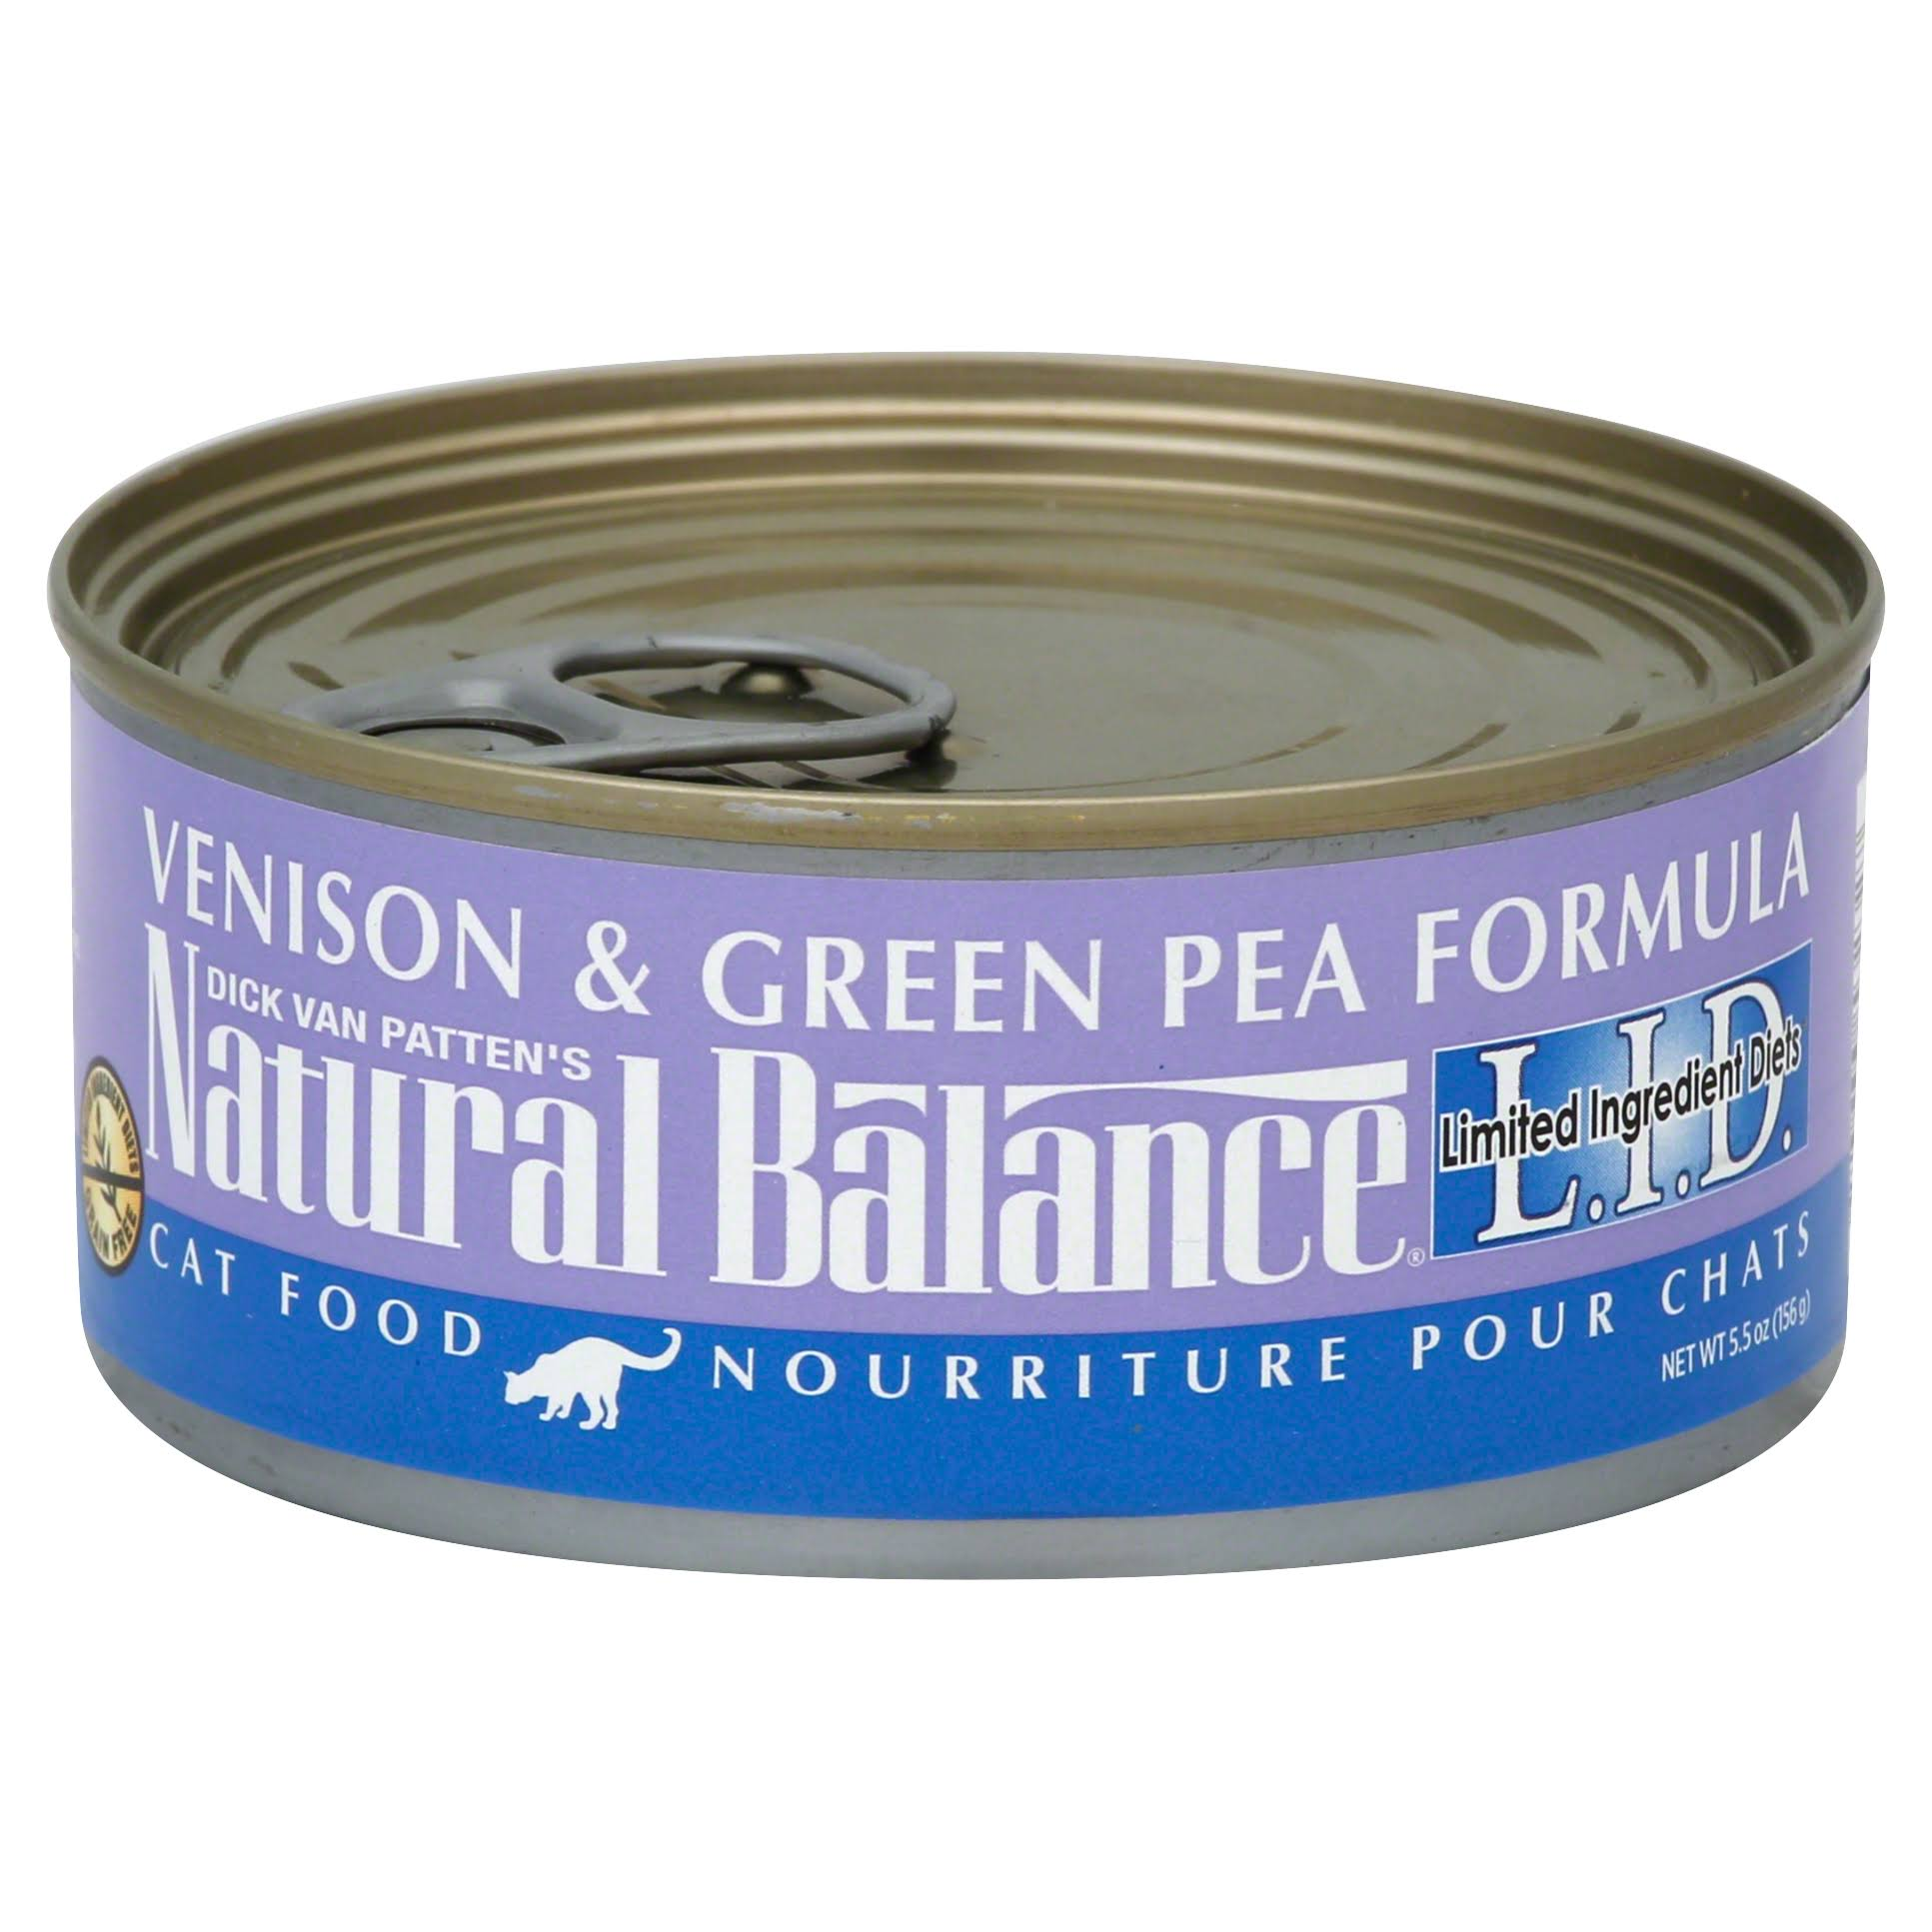 Natural Balance LID Grain Free Canned Cat Food - Venison & Green Pea